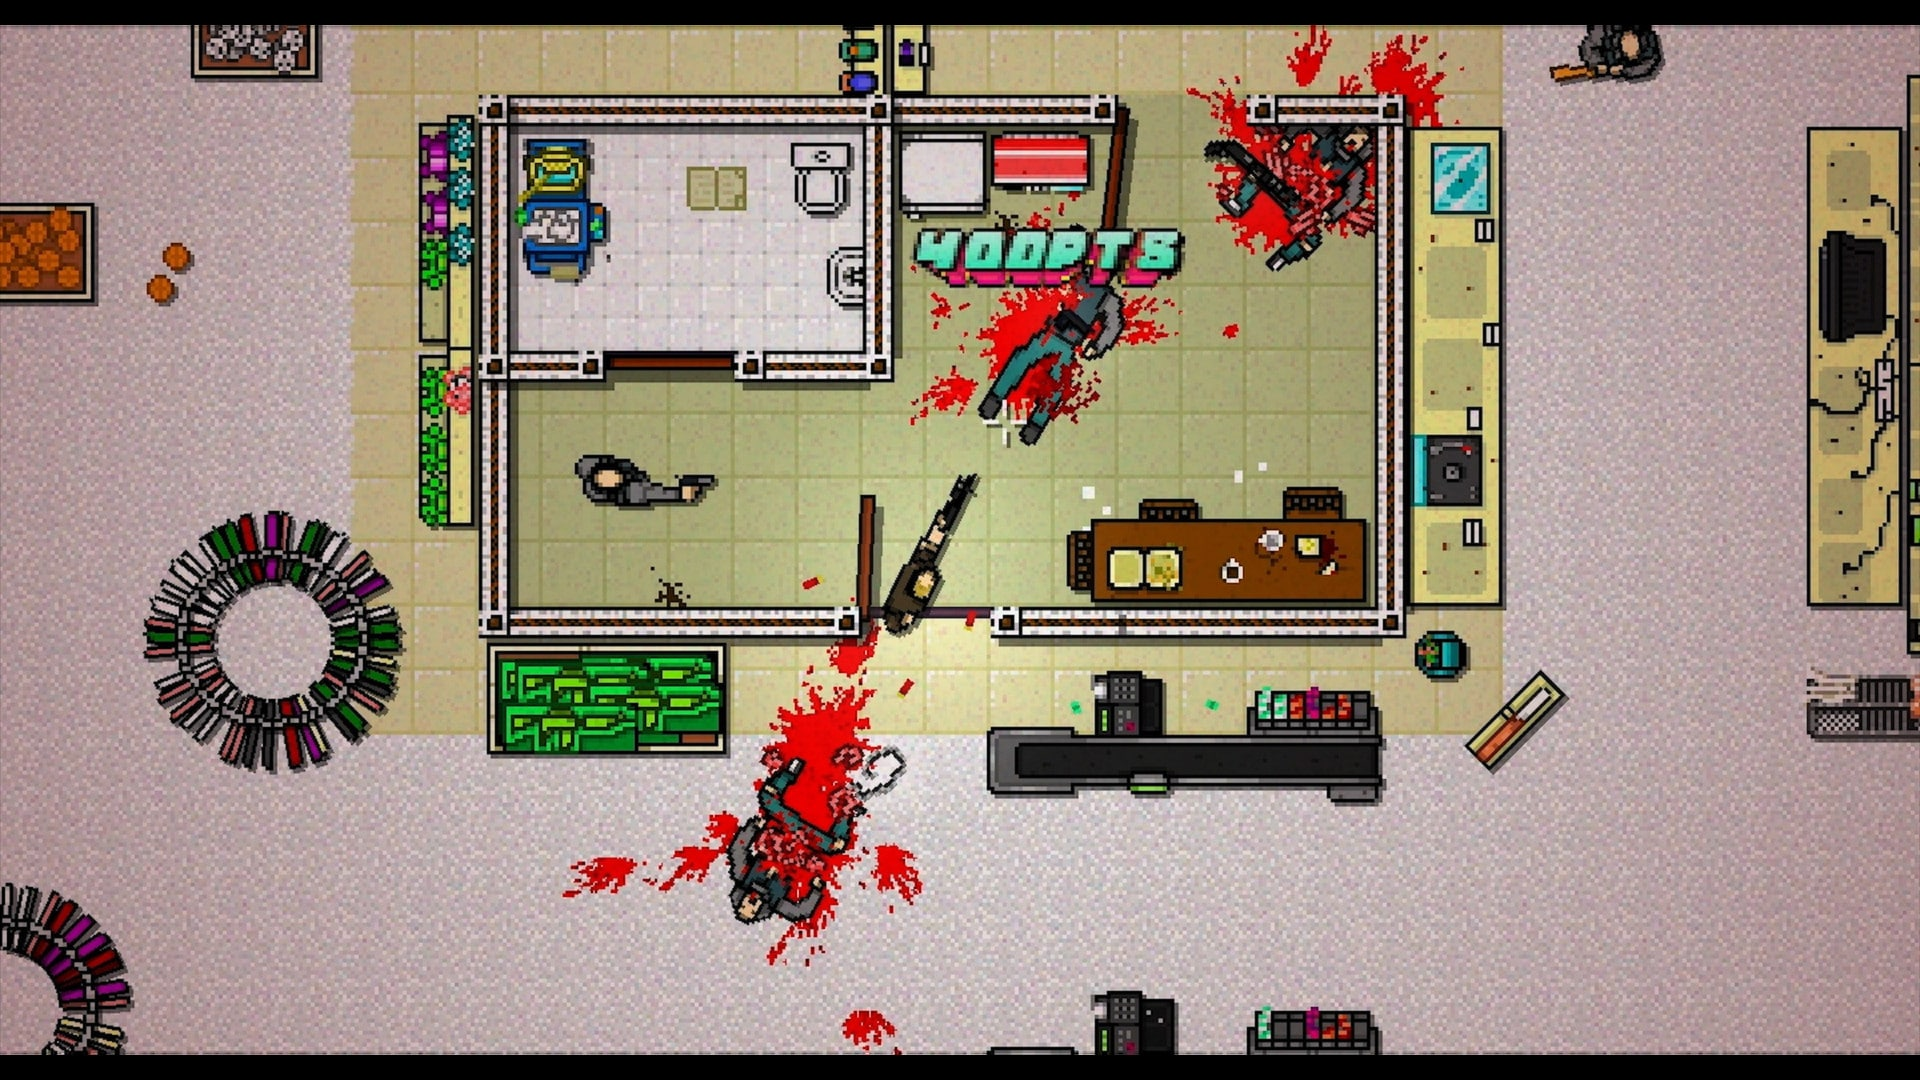 Hotline Miami 2: Wrong Number Steam Key GLOBAL - 4